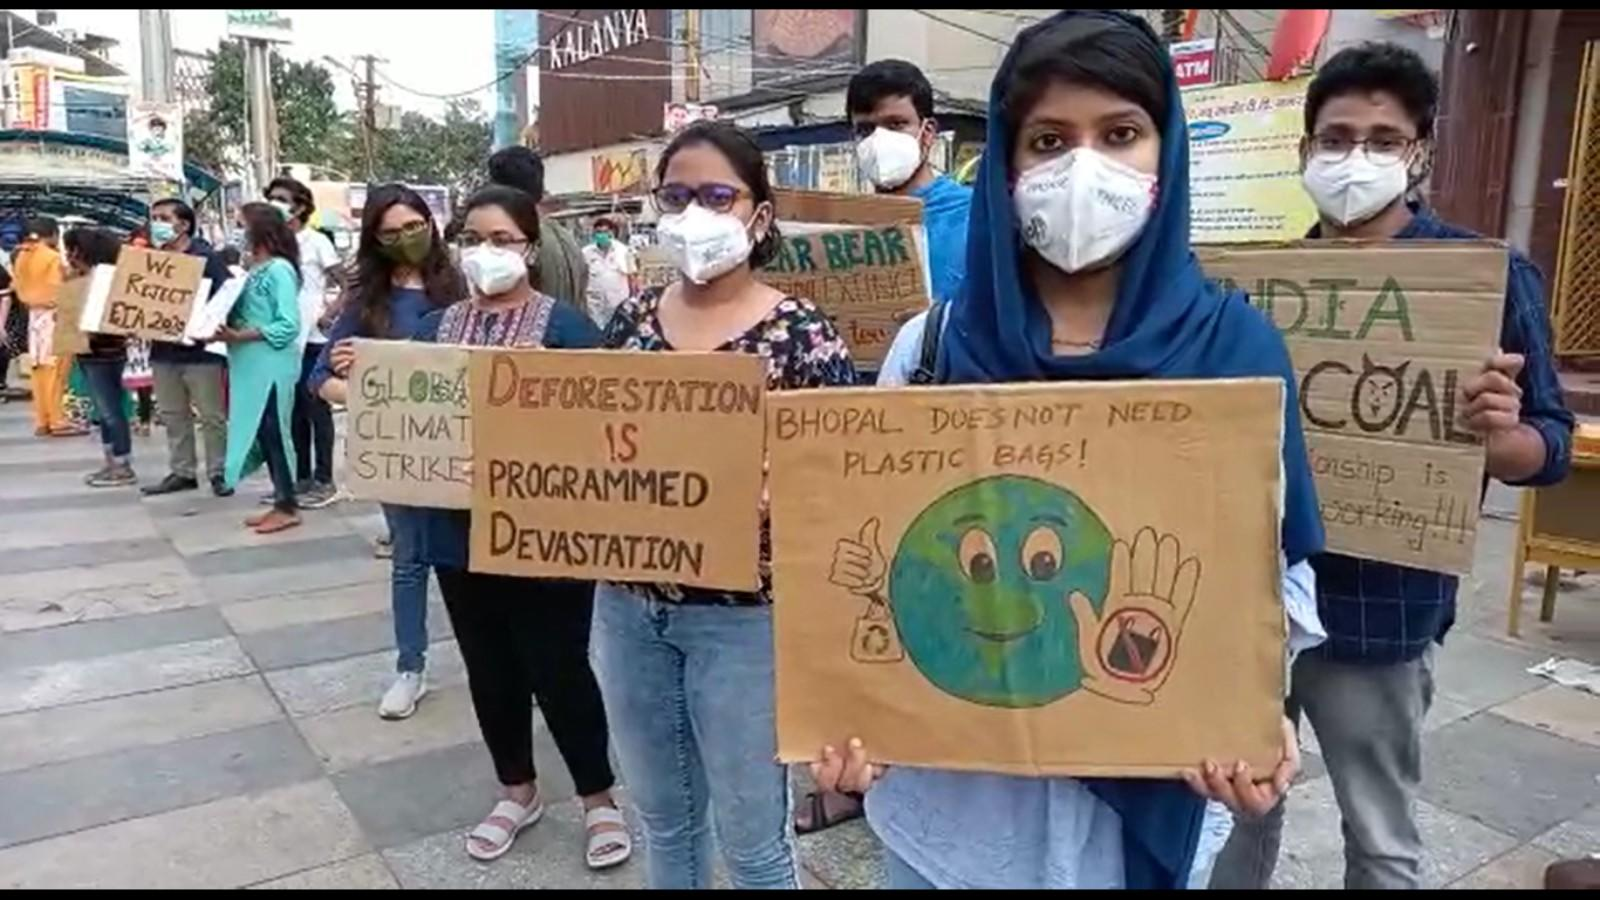 bhopal-climate-change-activists-participate-in-global-climate-strike